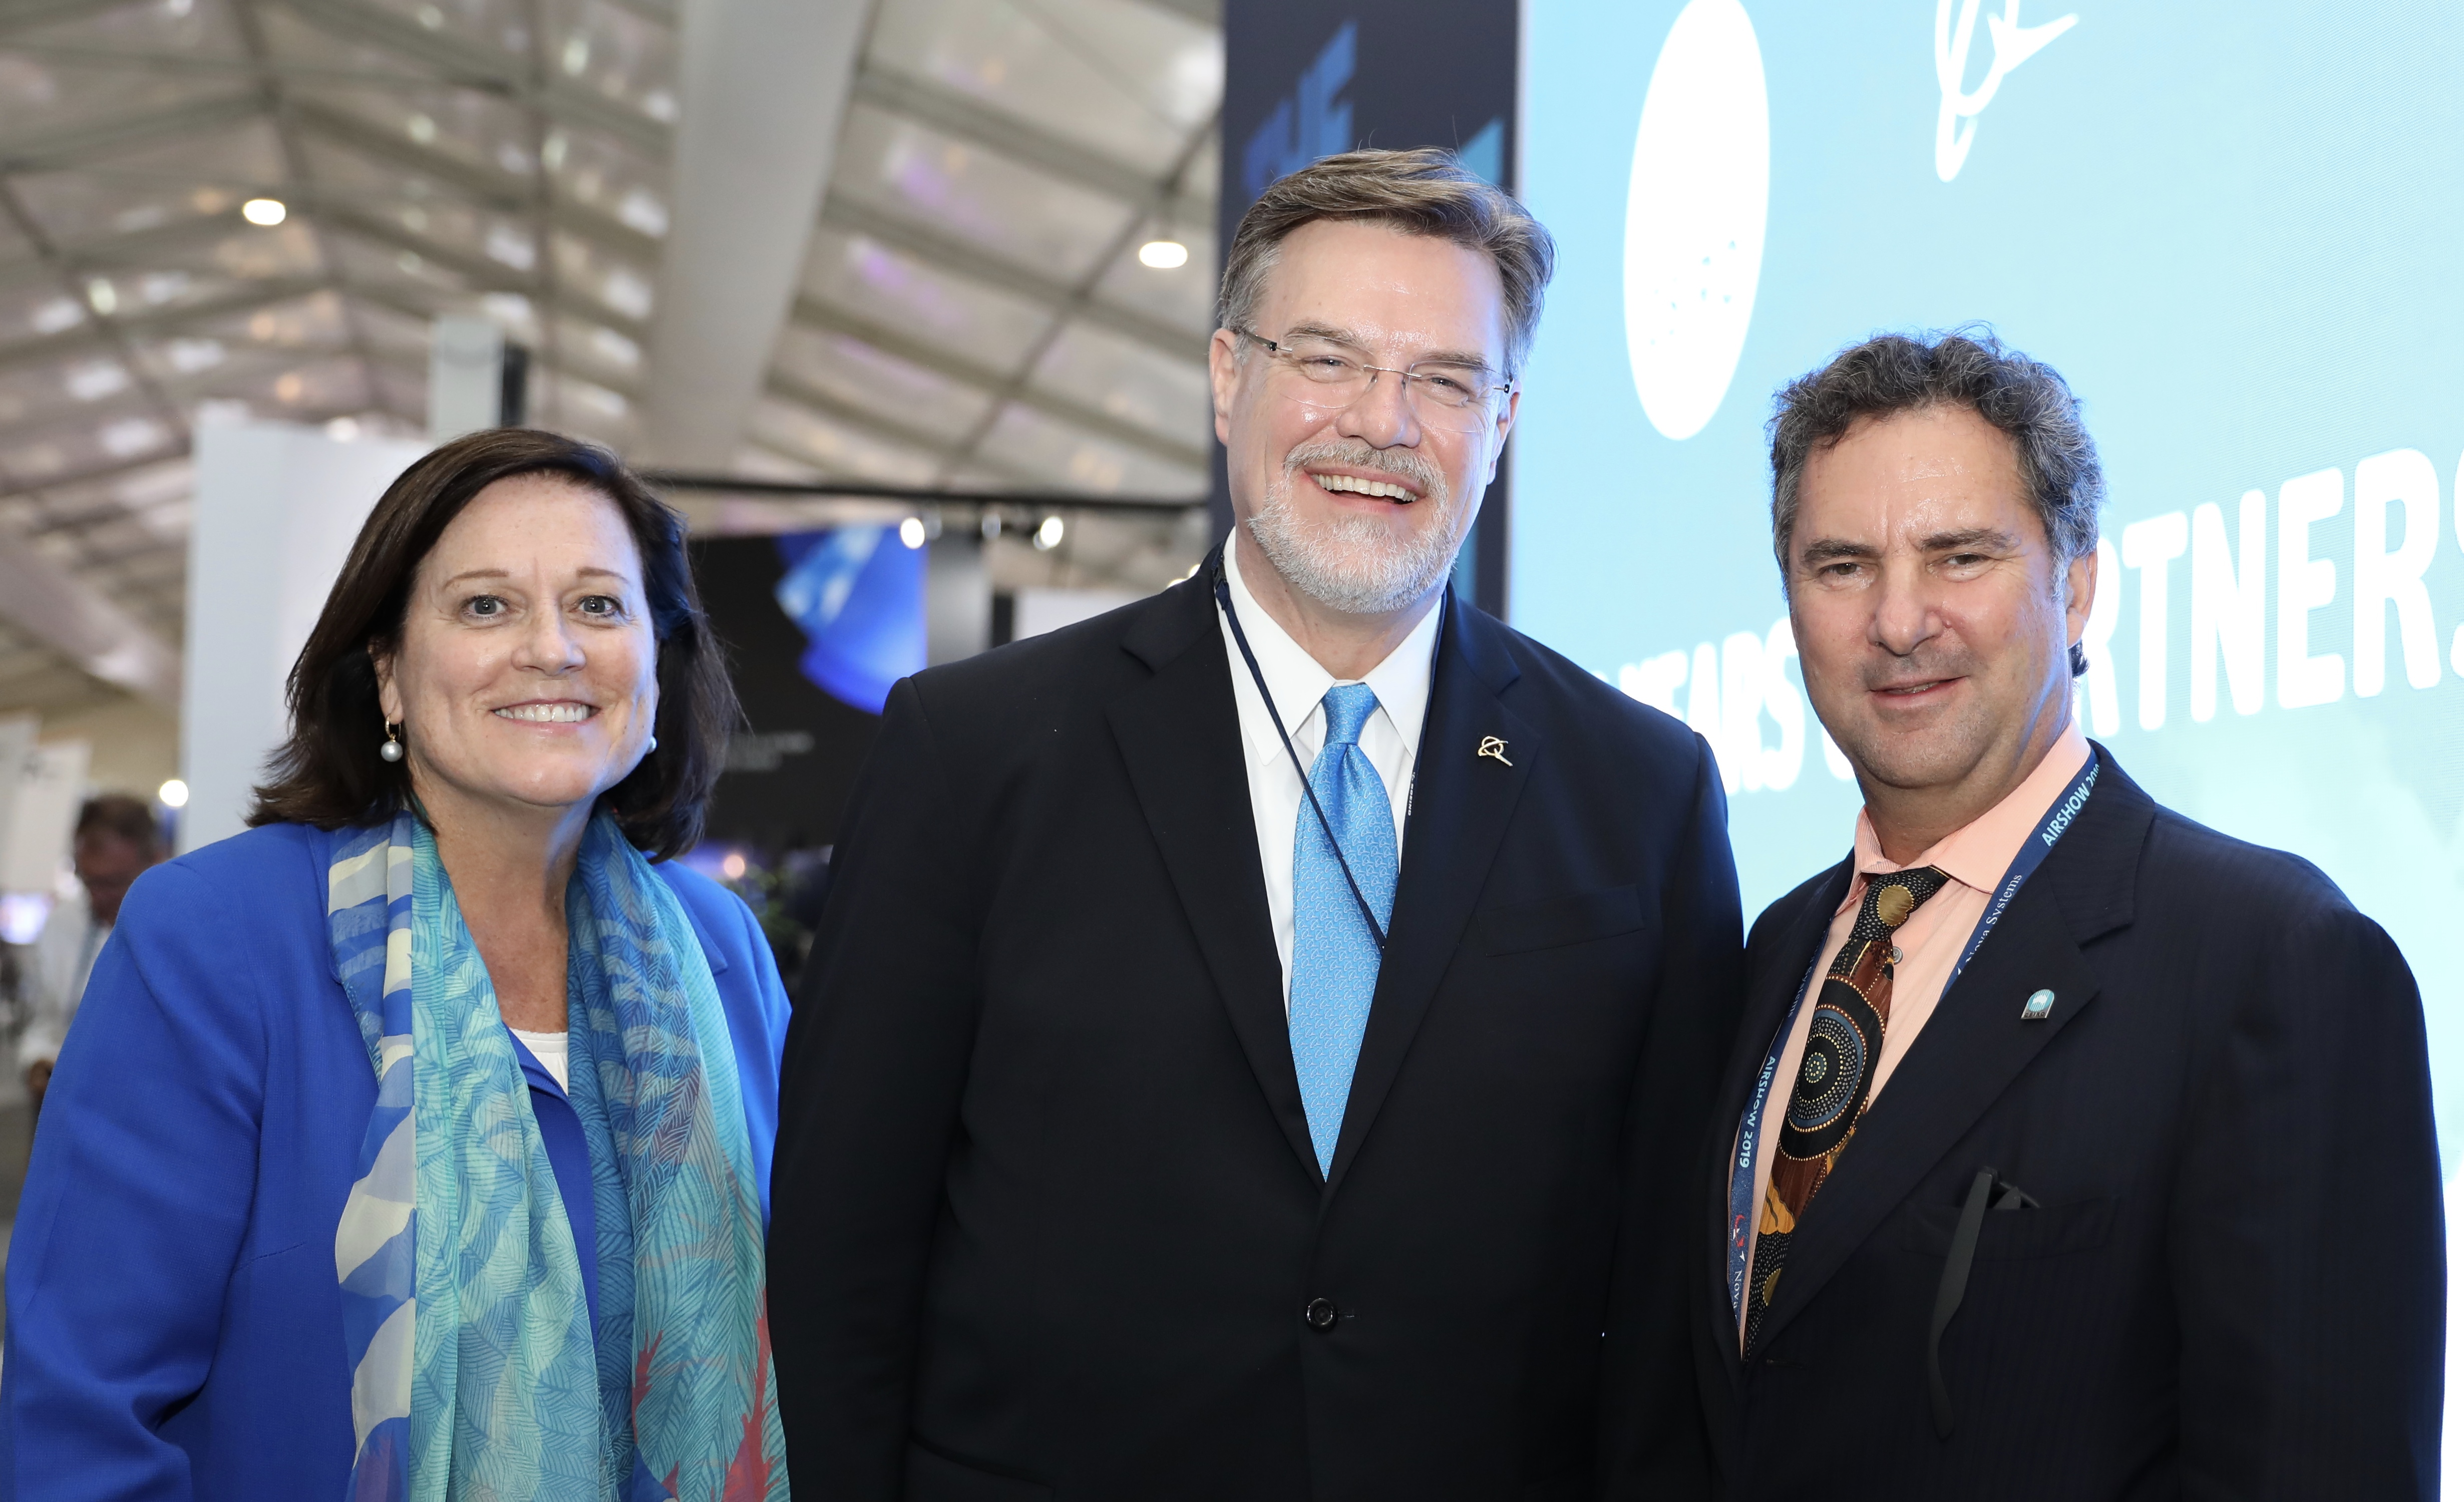 (L-R) Maureen Dougherty, Dr Greg Hyslop and Dr Larry Marshall standing together at the Boeing event.